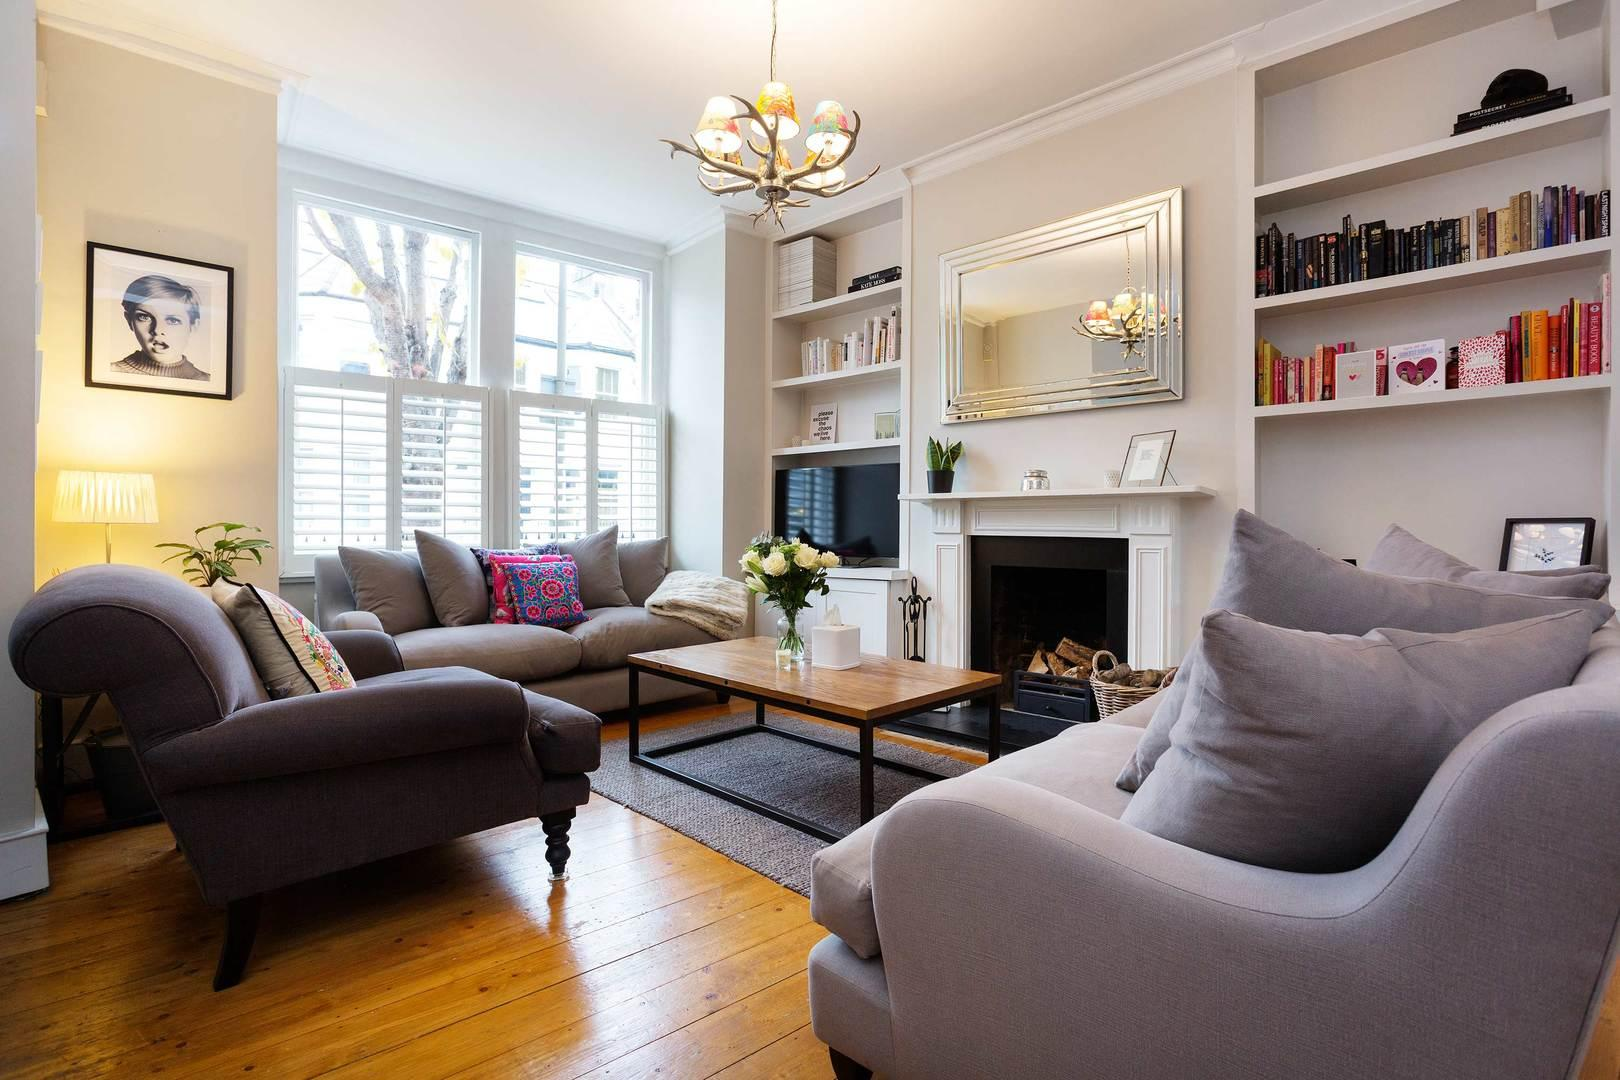 Property Image 1 - Elegant Wandsworth House with Garden, near Leafy Park